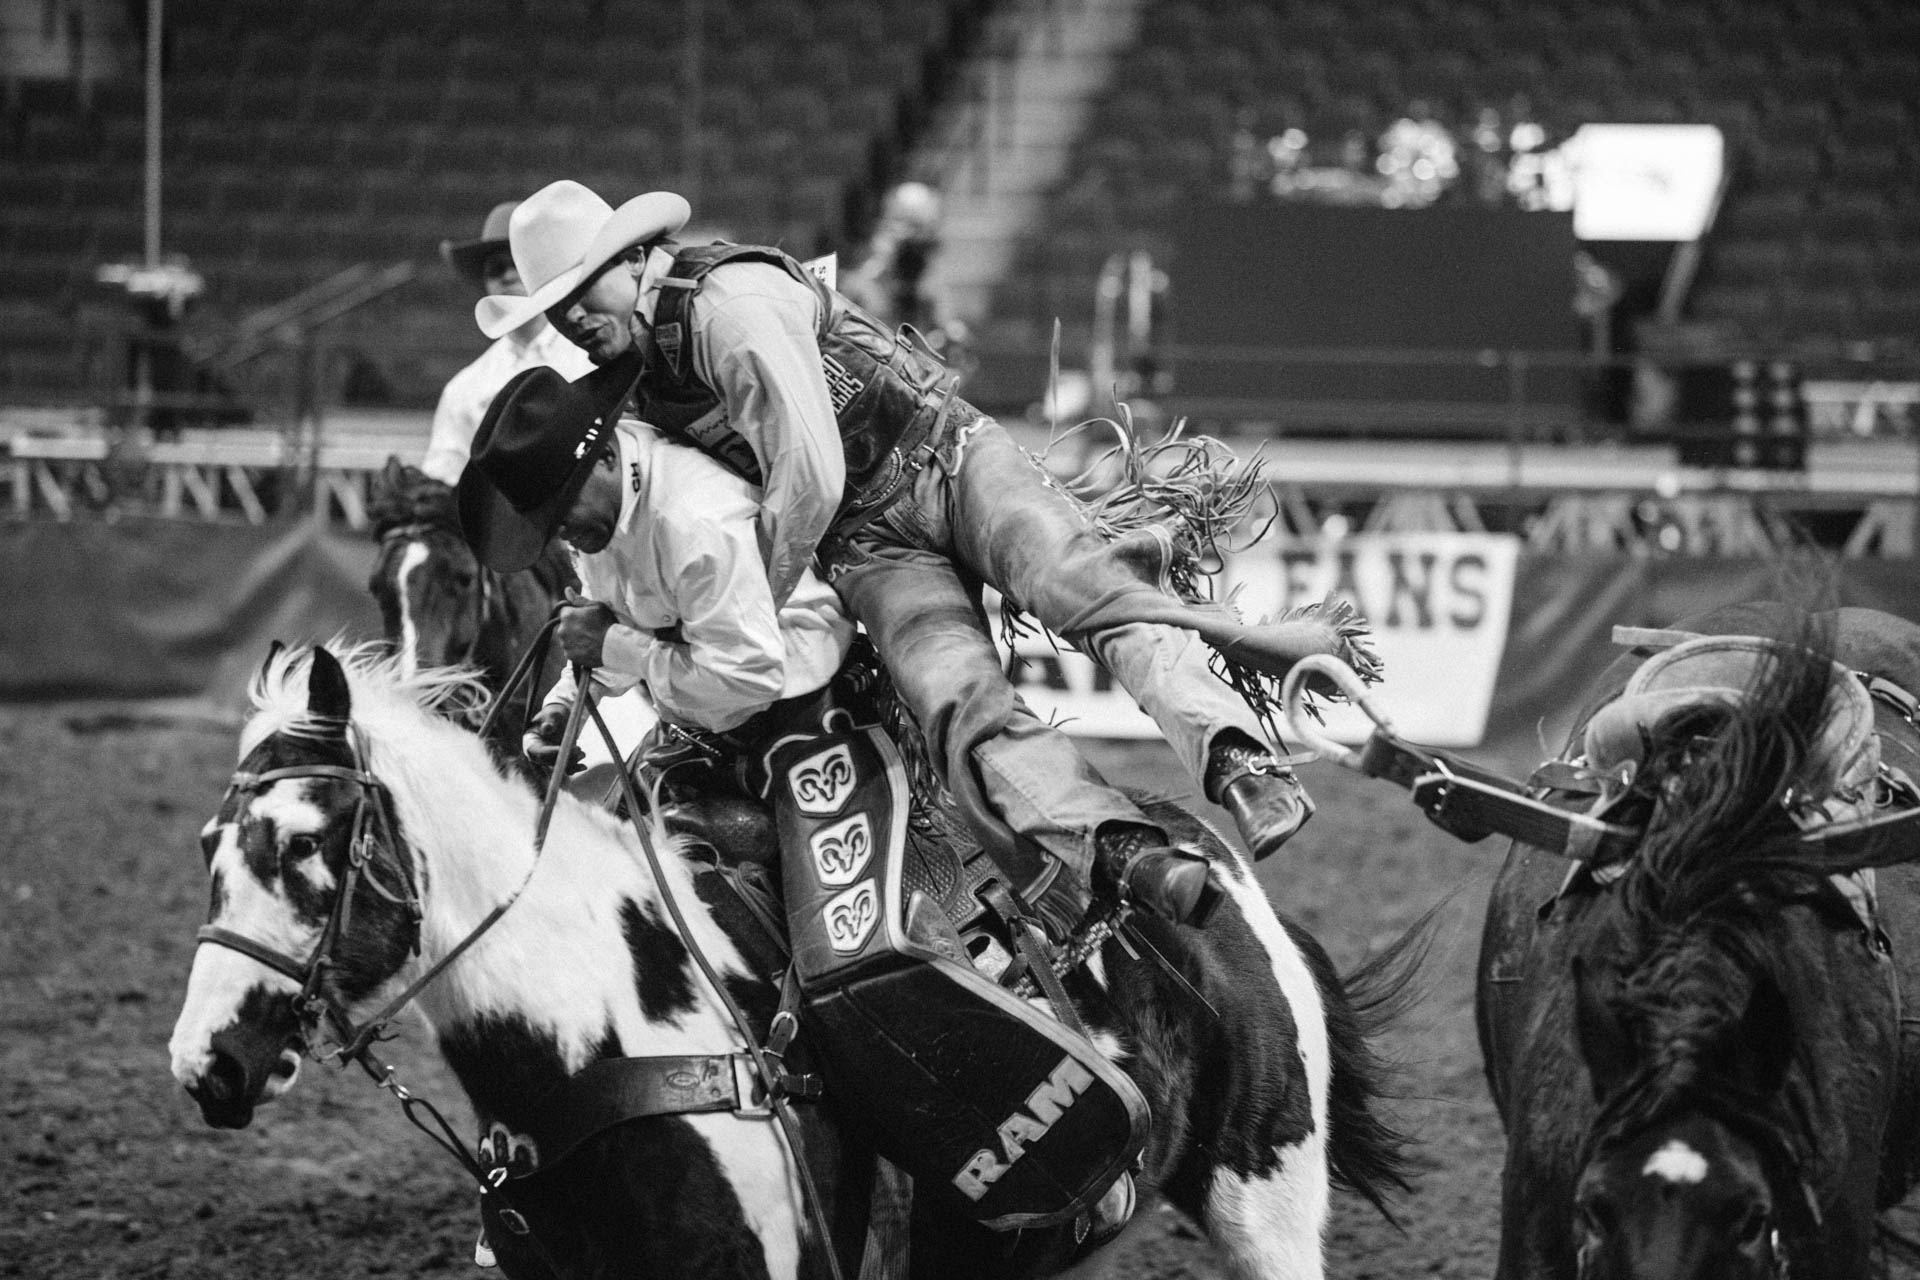 clinch-worlds-toughest-rodeo-2388